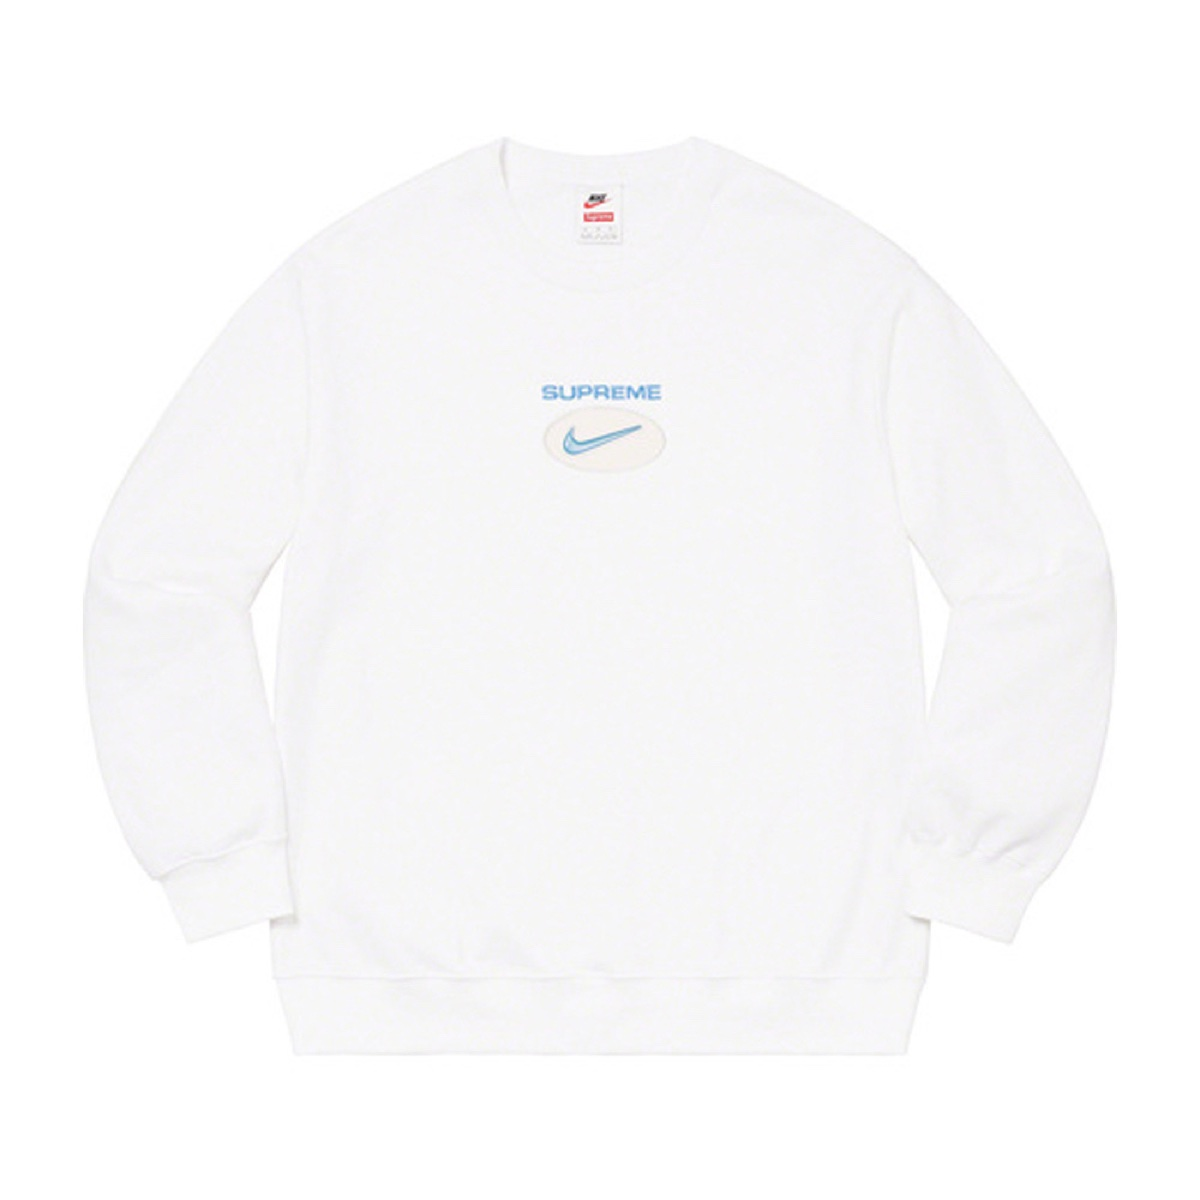 Supreme Nike Jewel Crewneck White